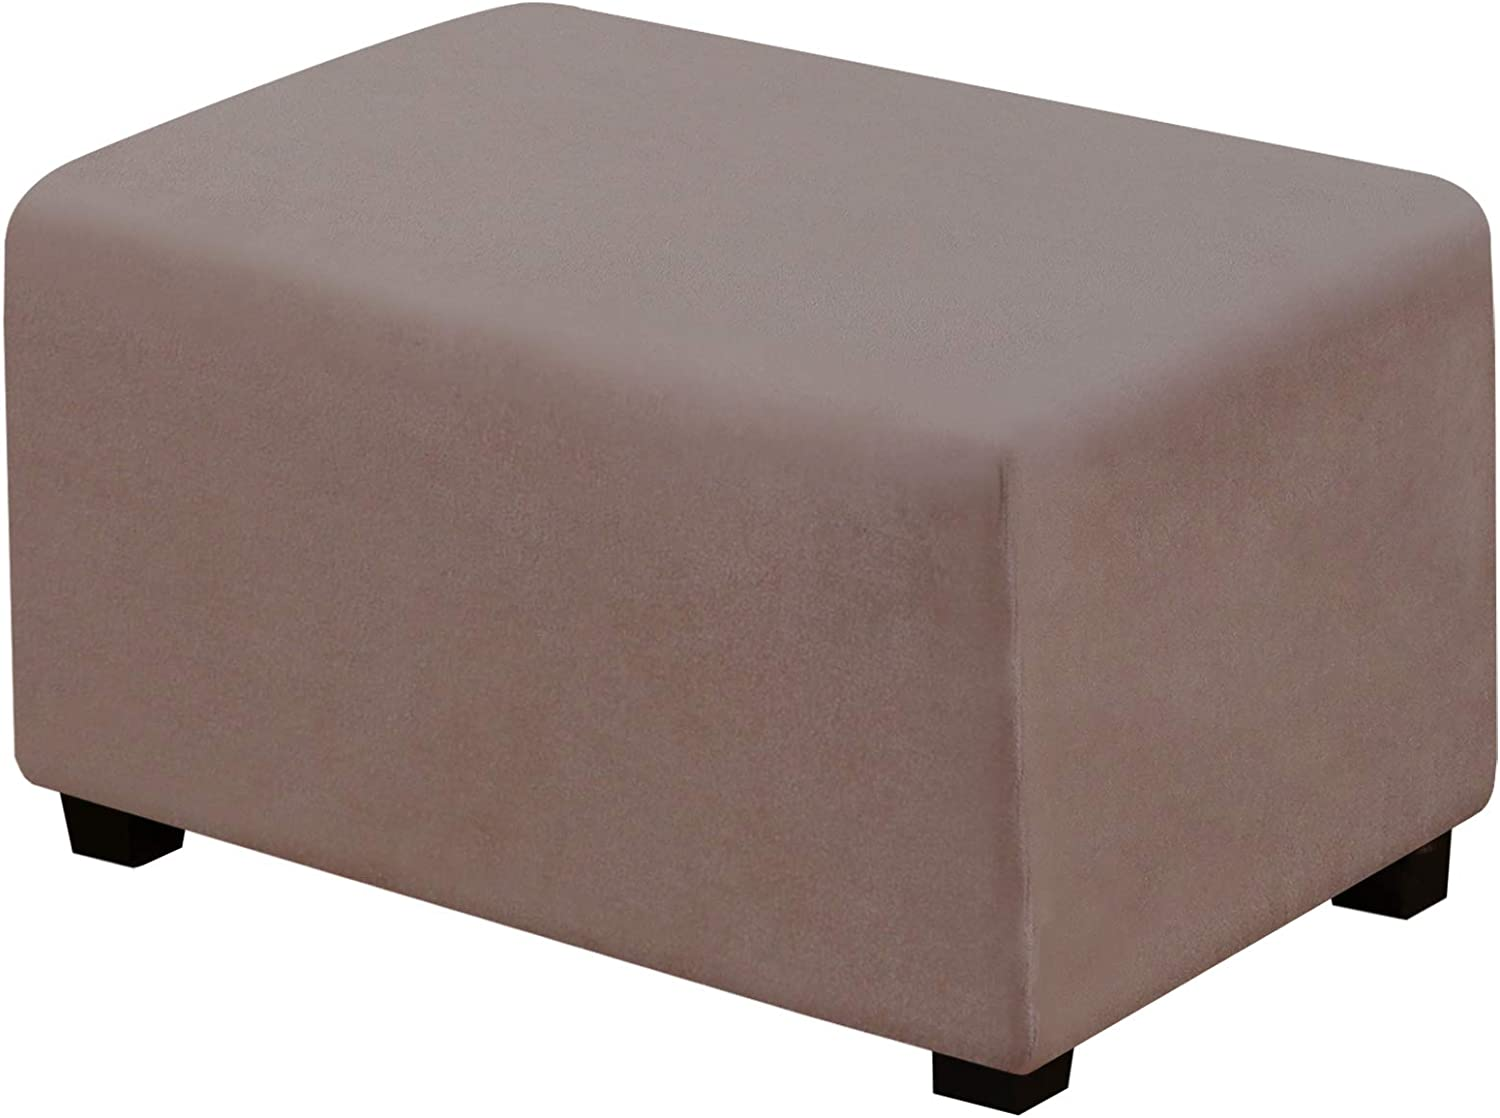 Suede Ottoman Cover Ottoman Slipcovers Removable Footstool Protector Velvet Plush 1 Piece Water Repellent Furniture Protector with Elastic Bottom, Machine Washable(Ottoman X-Large, Taupe)